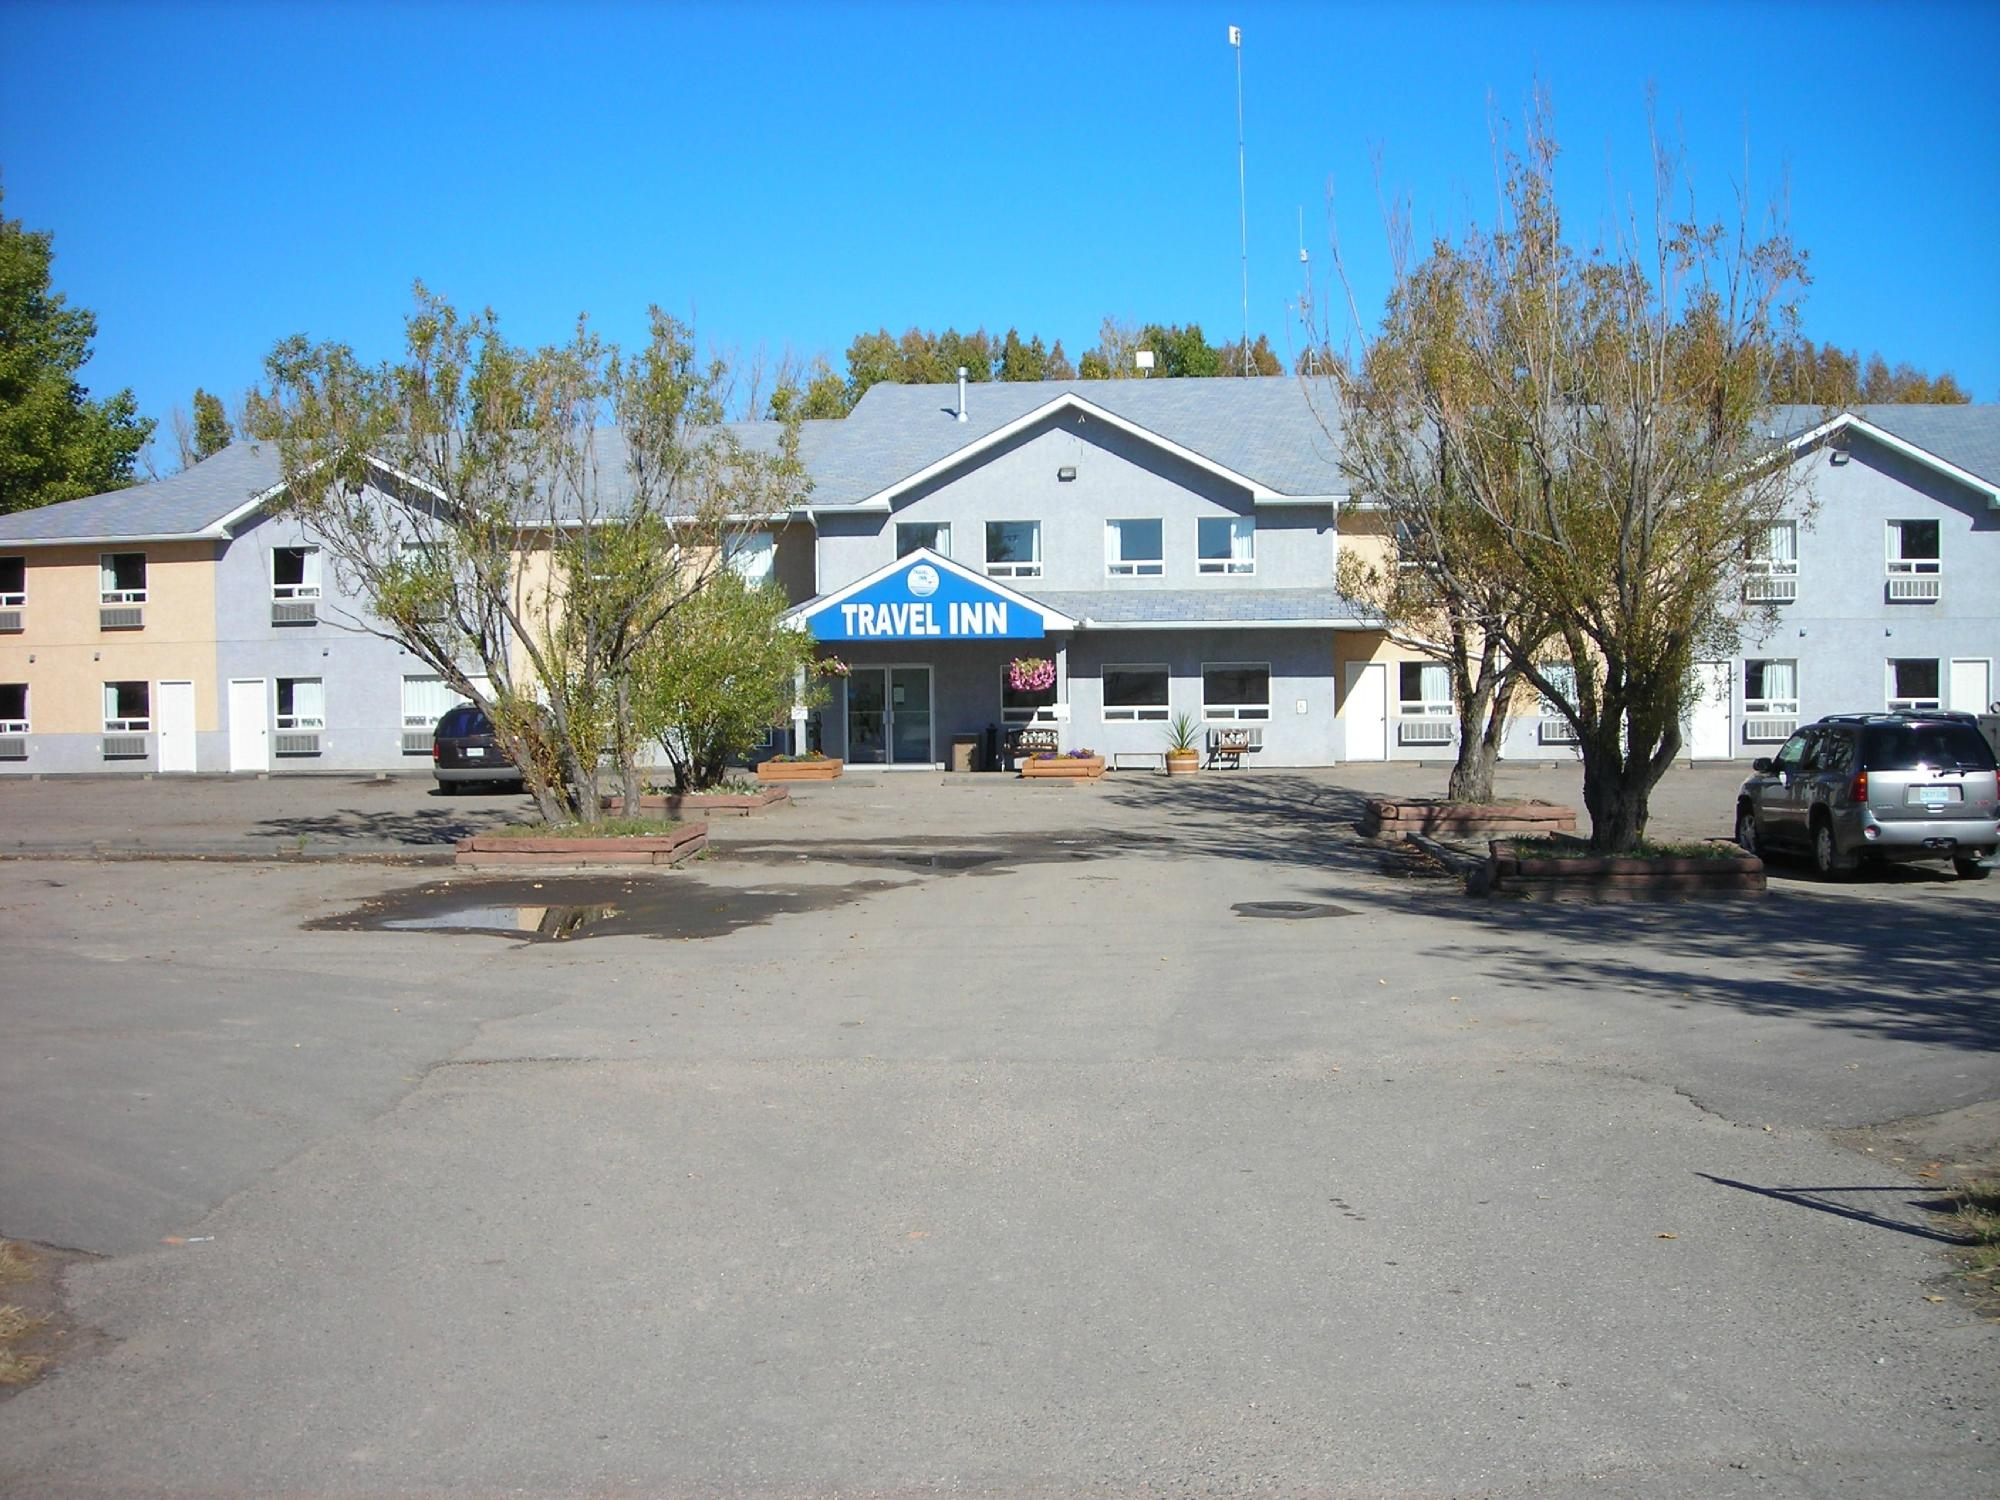 The Saskatoon Travel Inn